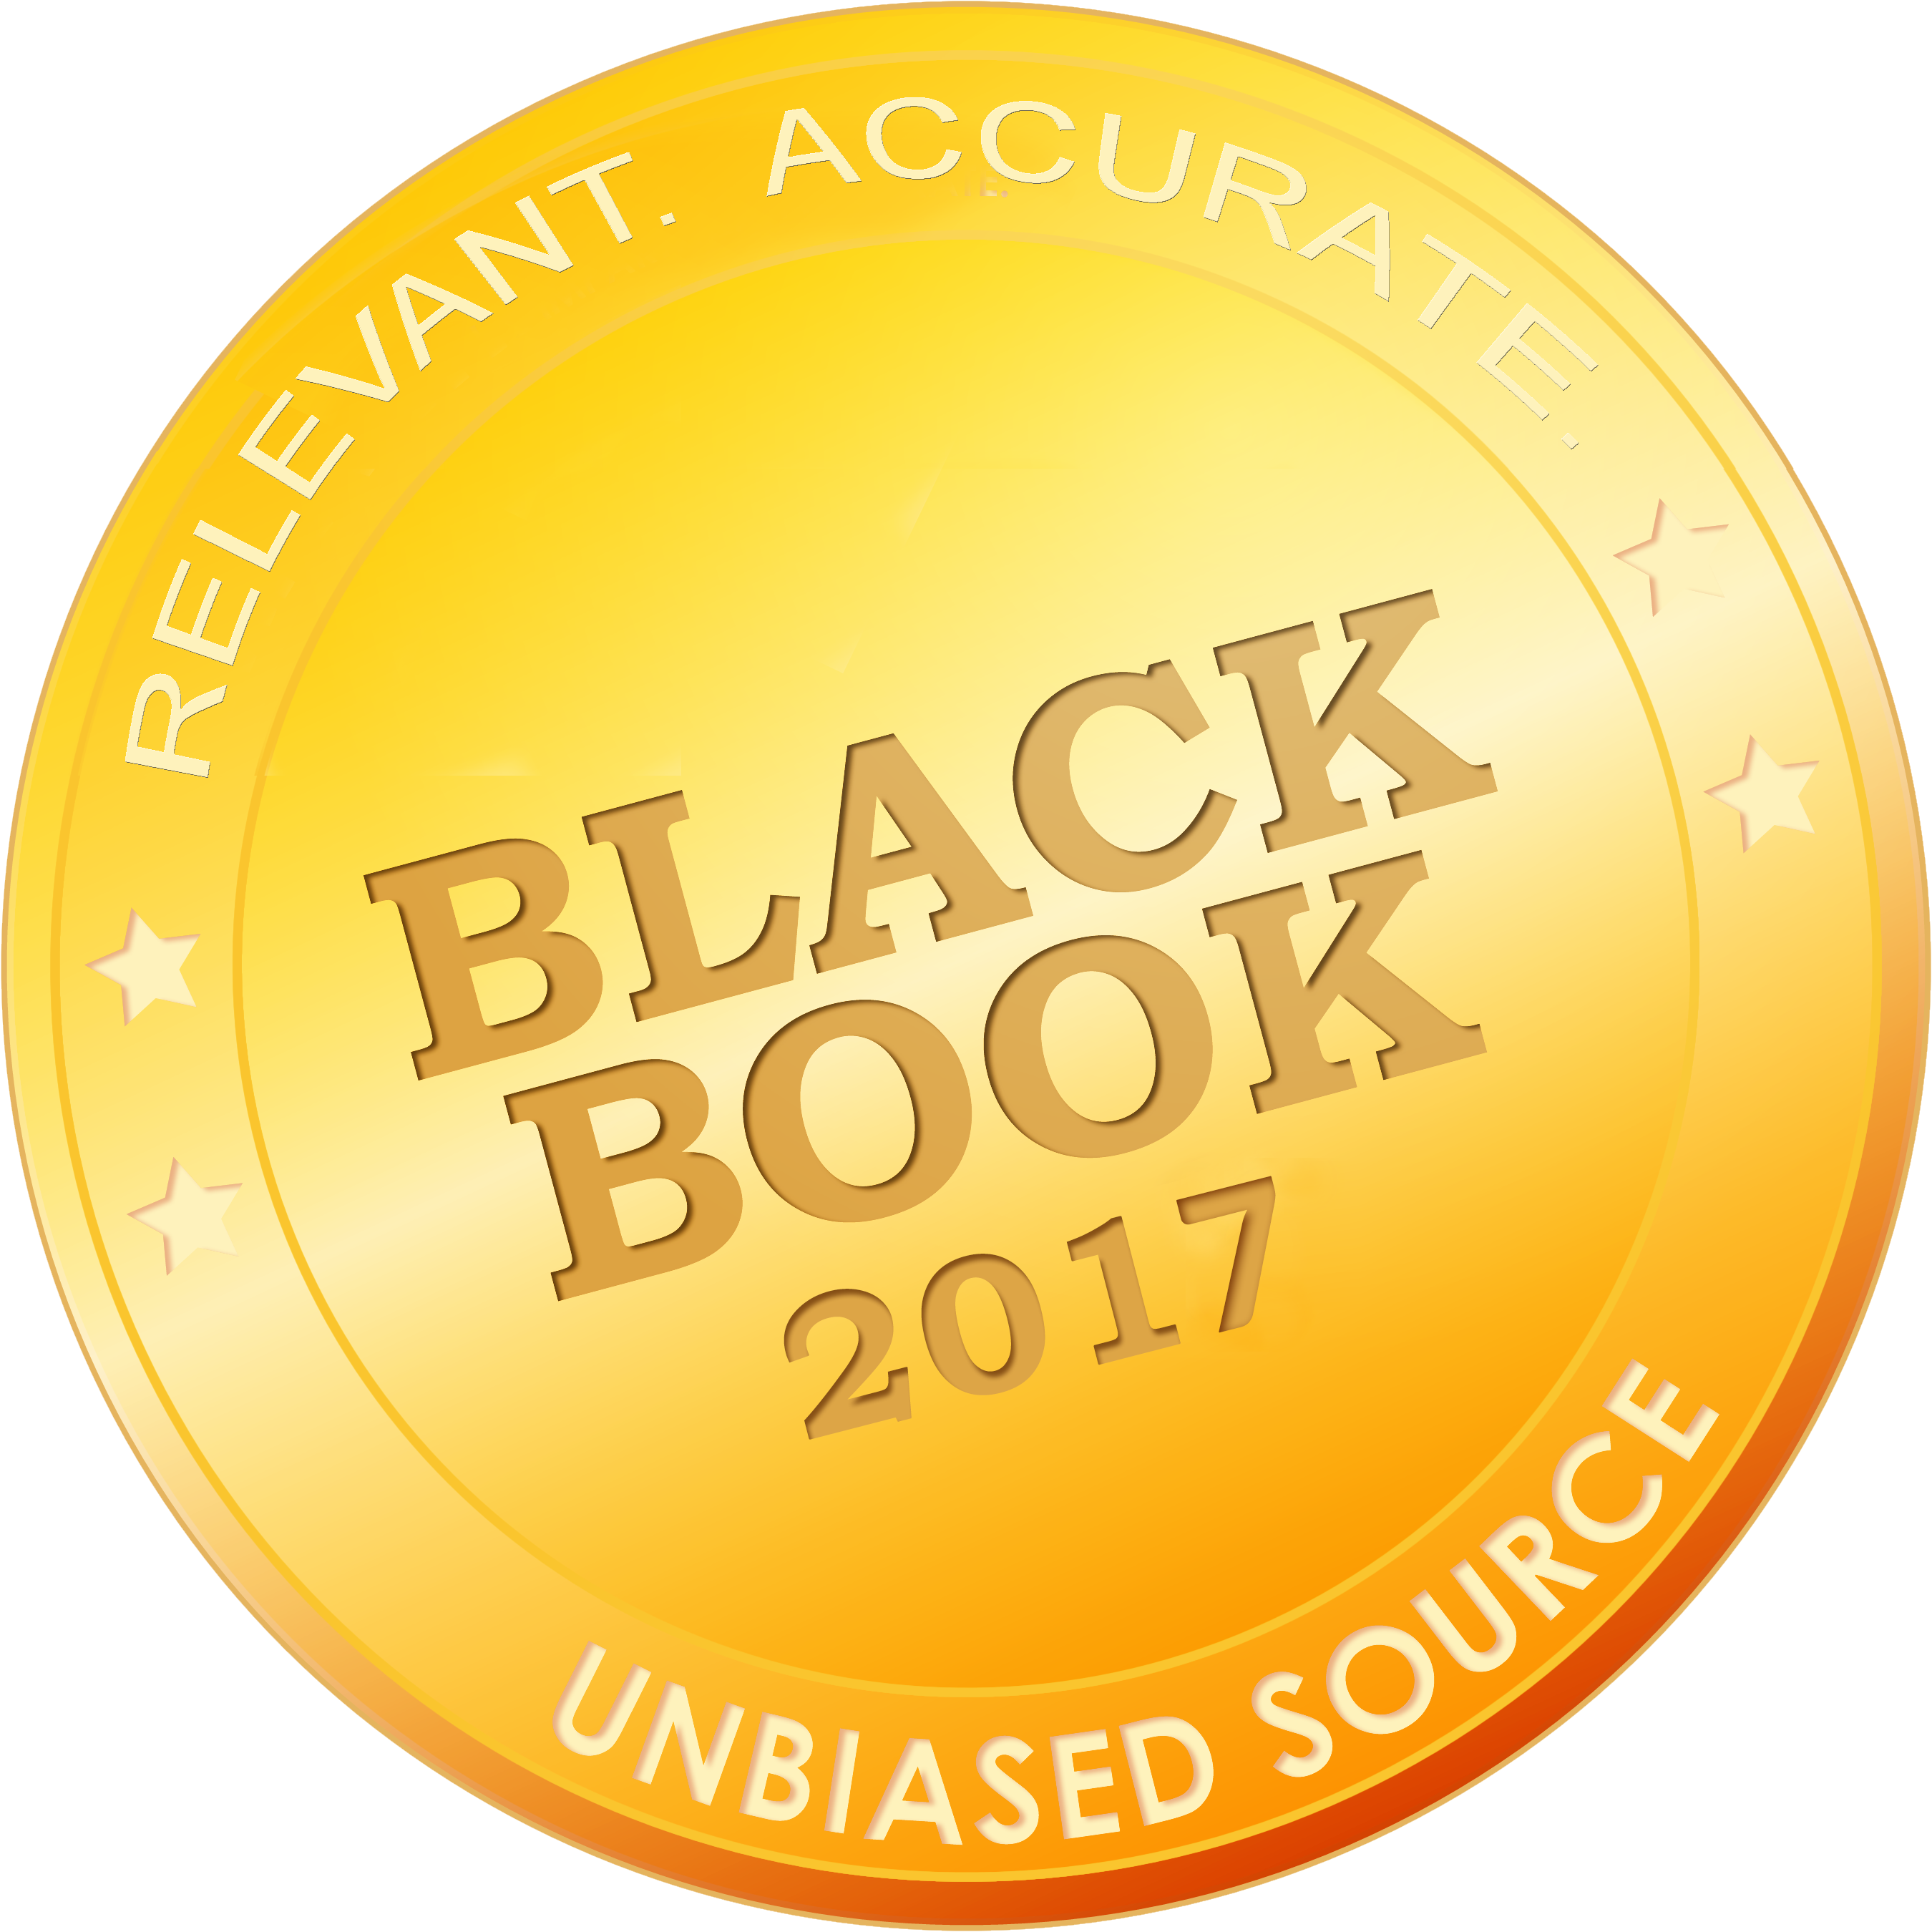 2017 Black Book Rankings High resolution Seal